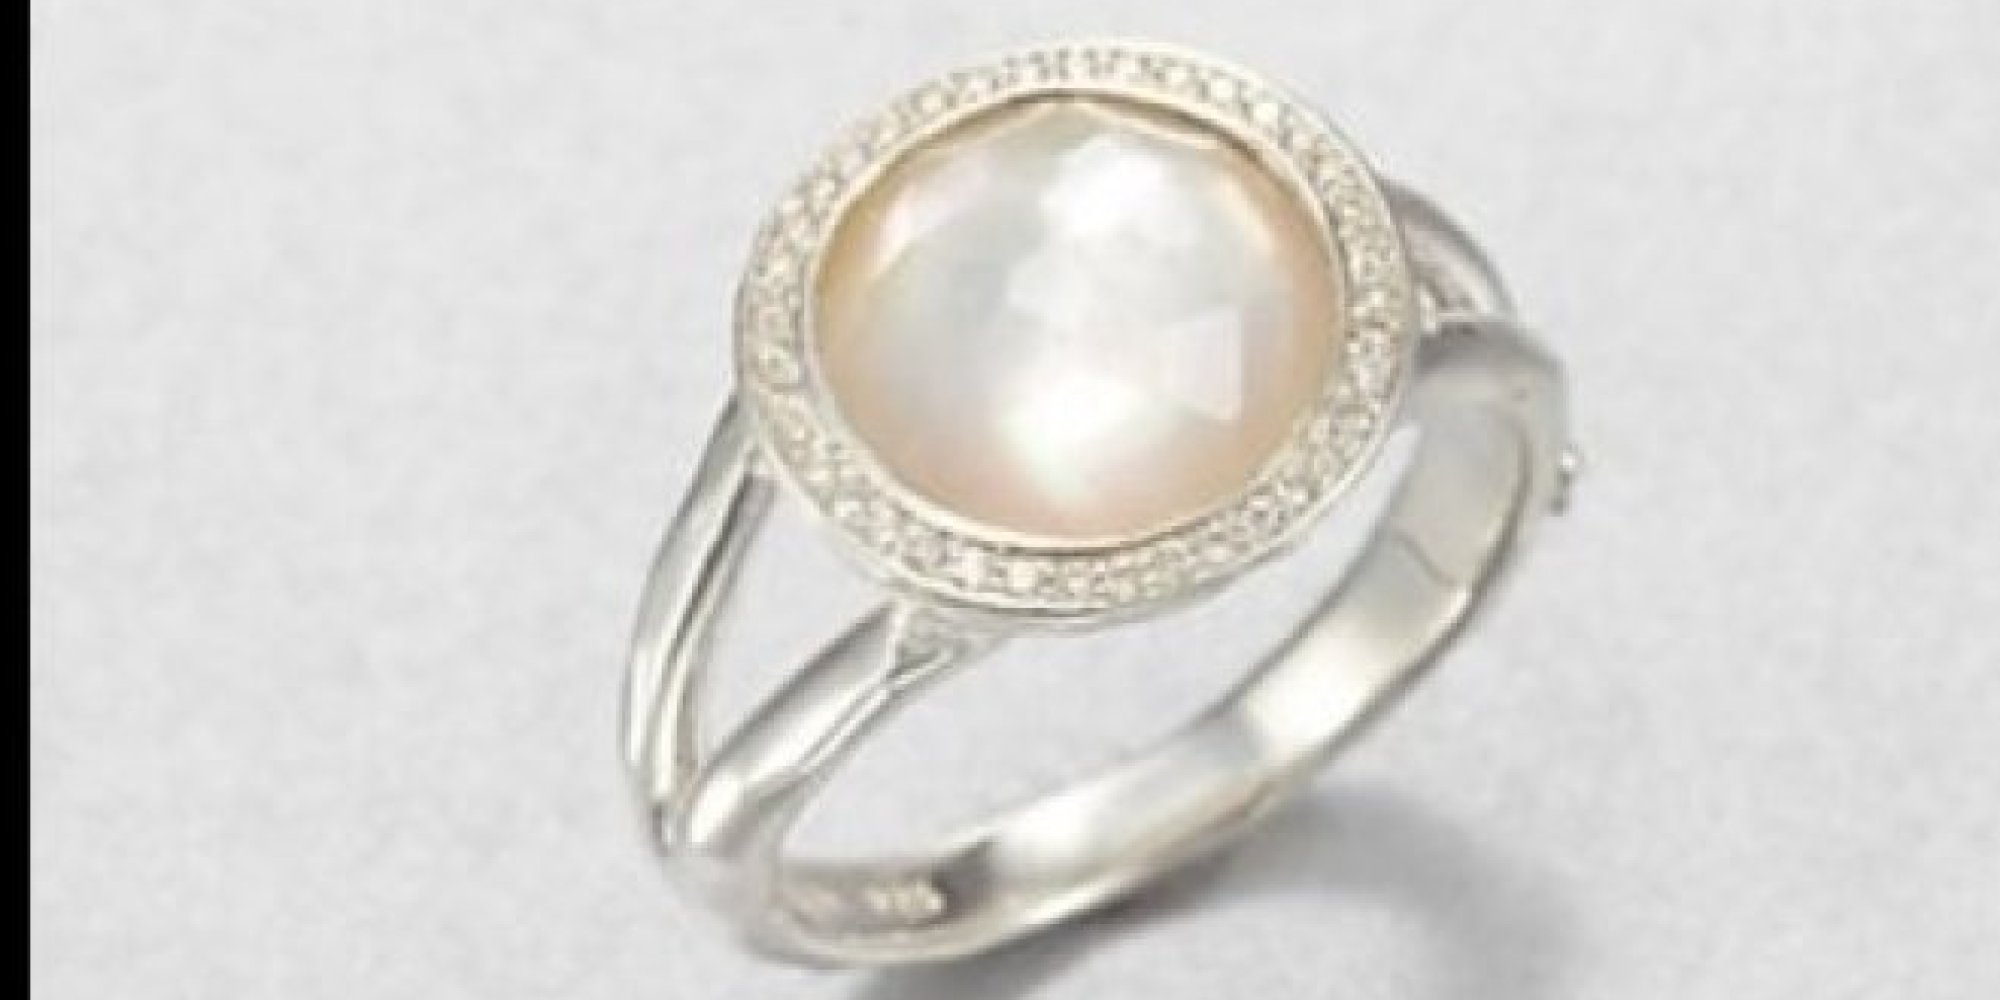 pearl stewart rings weddings pearls ring vert danhov martha engagement pretty